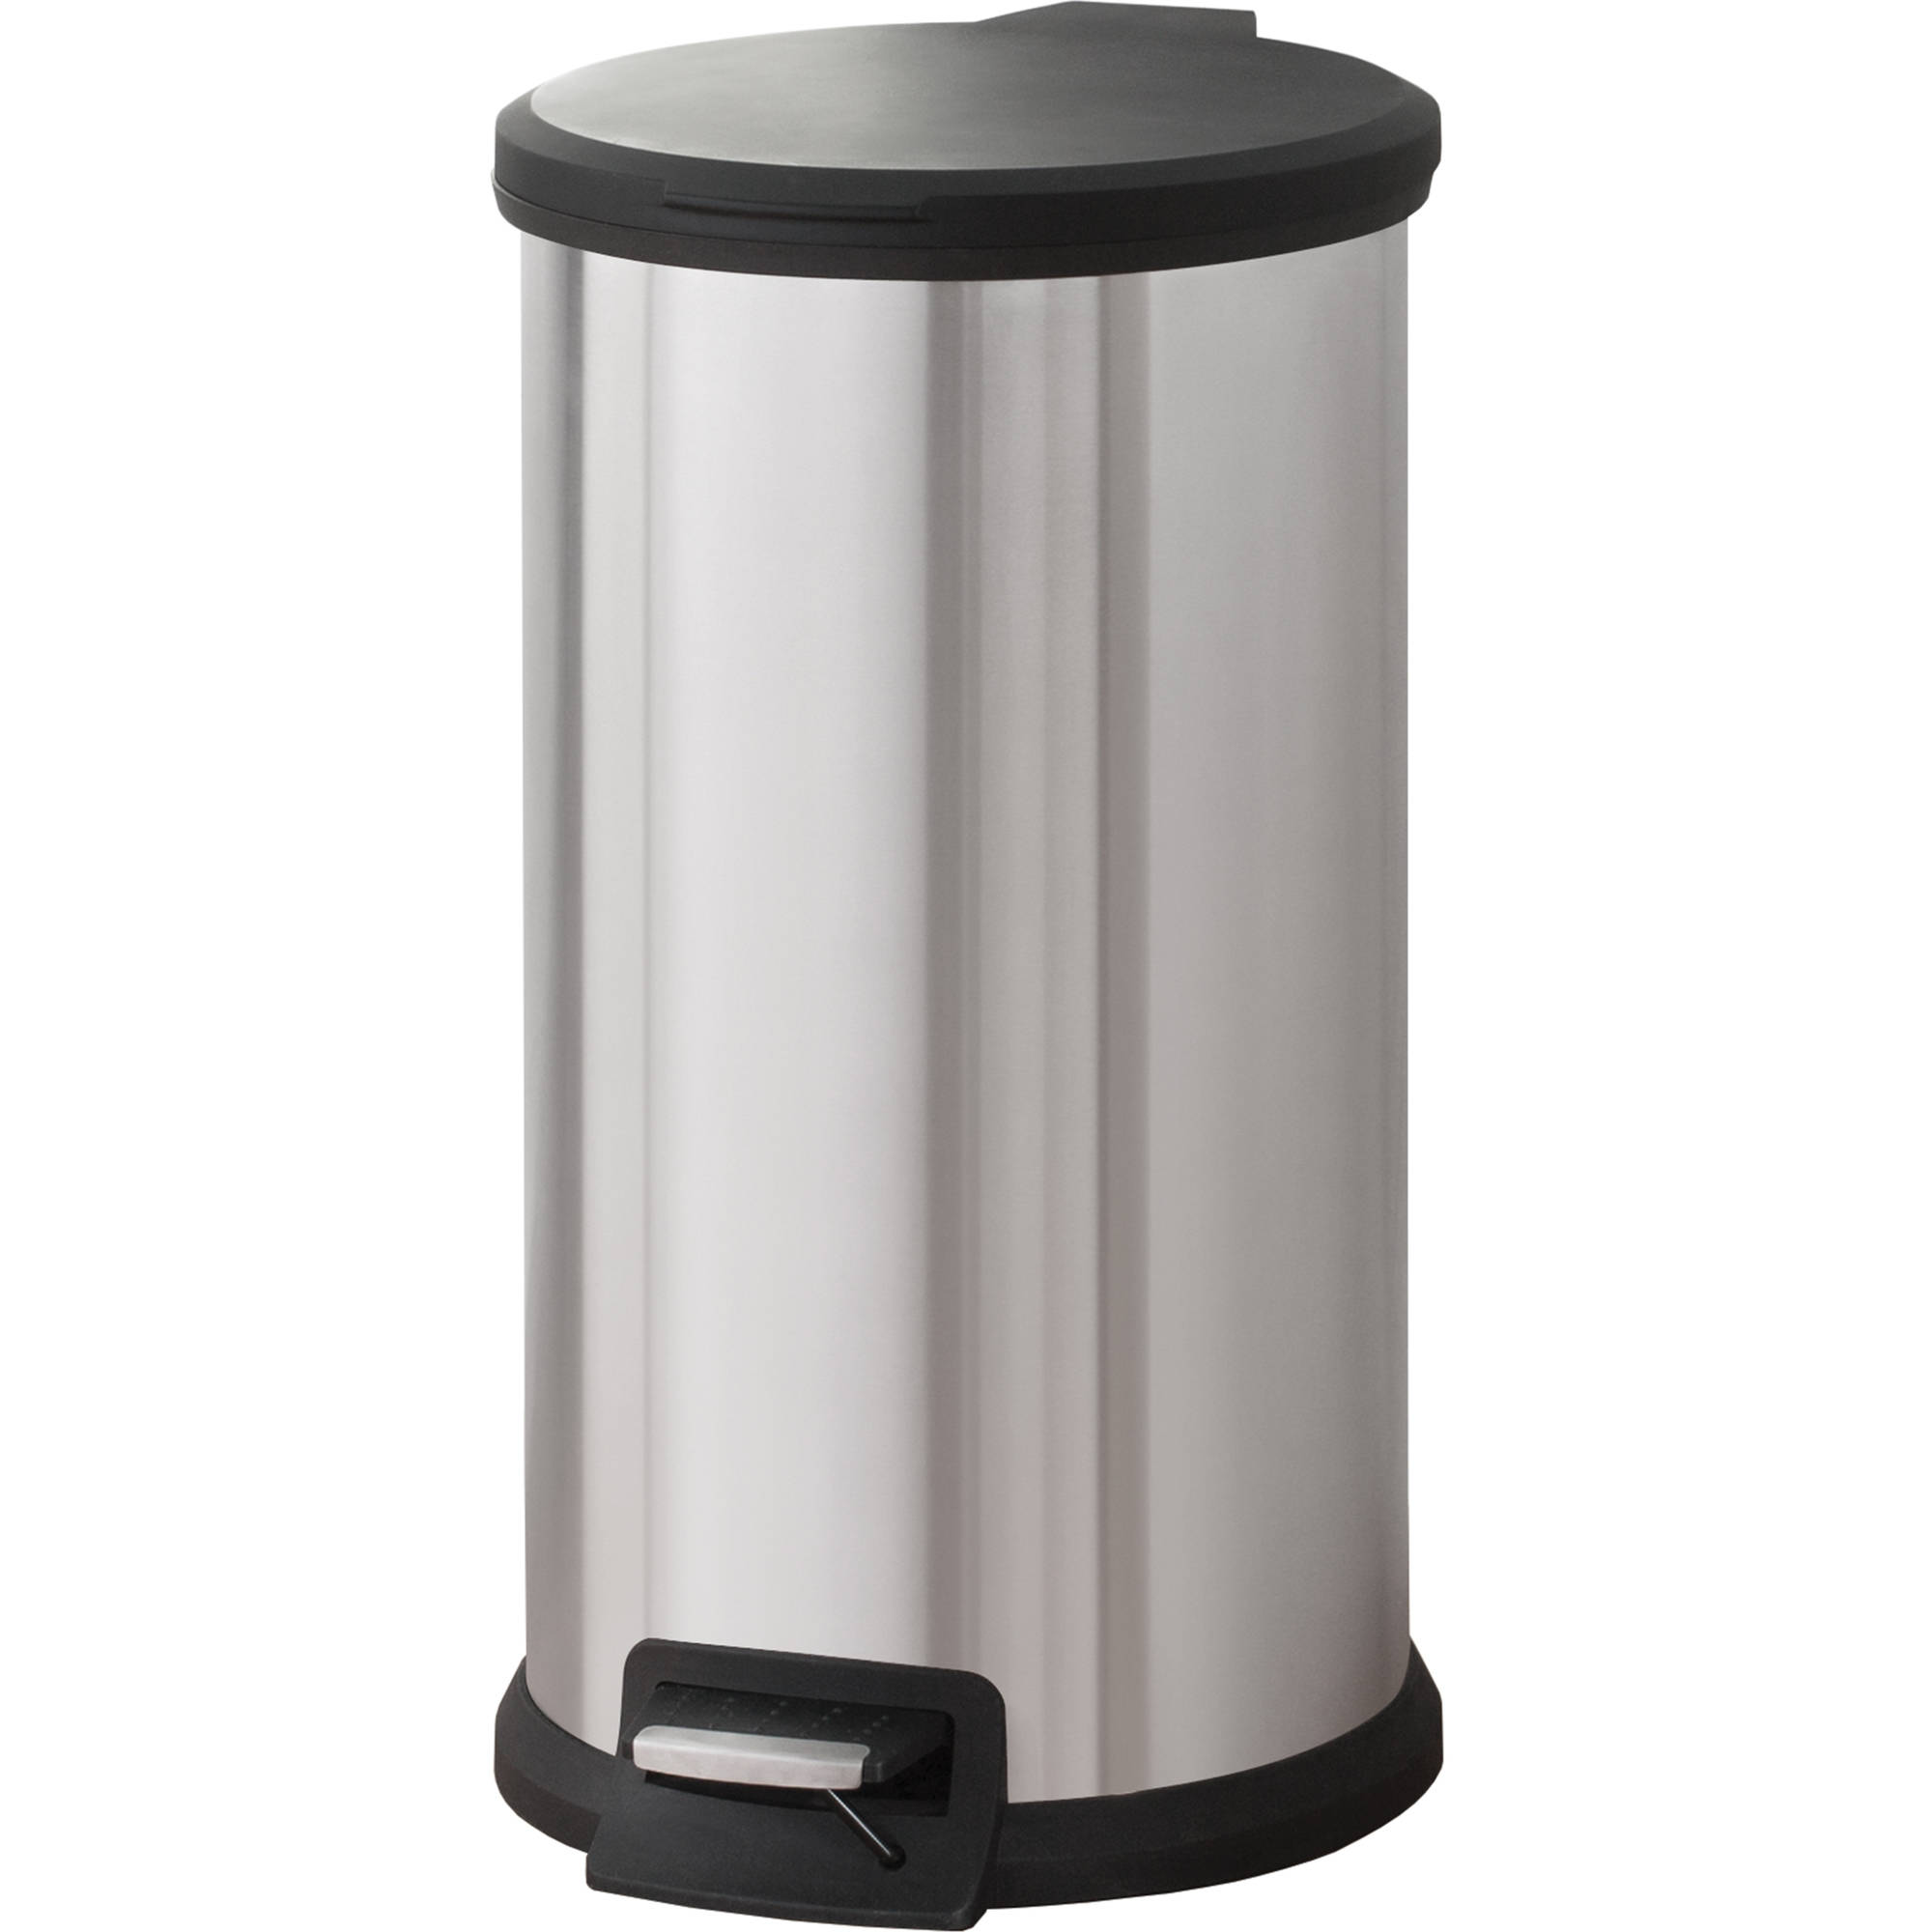 Mainstays 7.9 Gallon Round Stainless Steel Waste Can ...